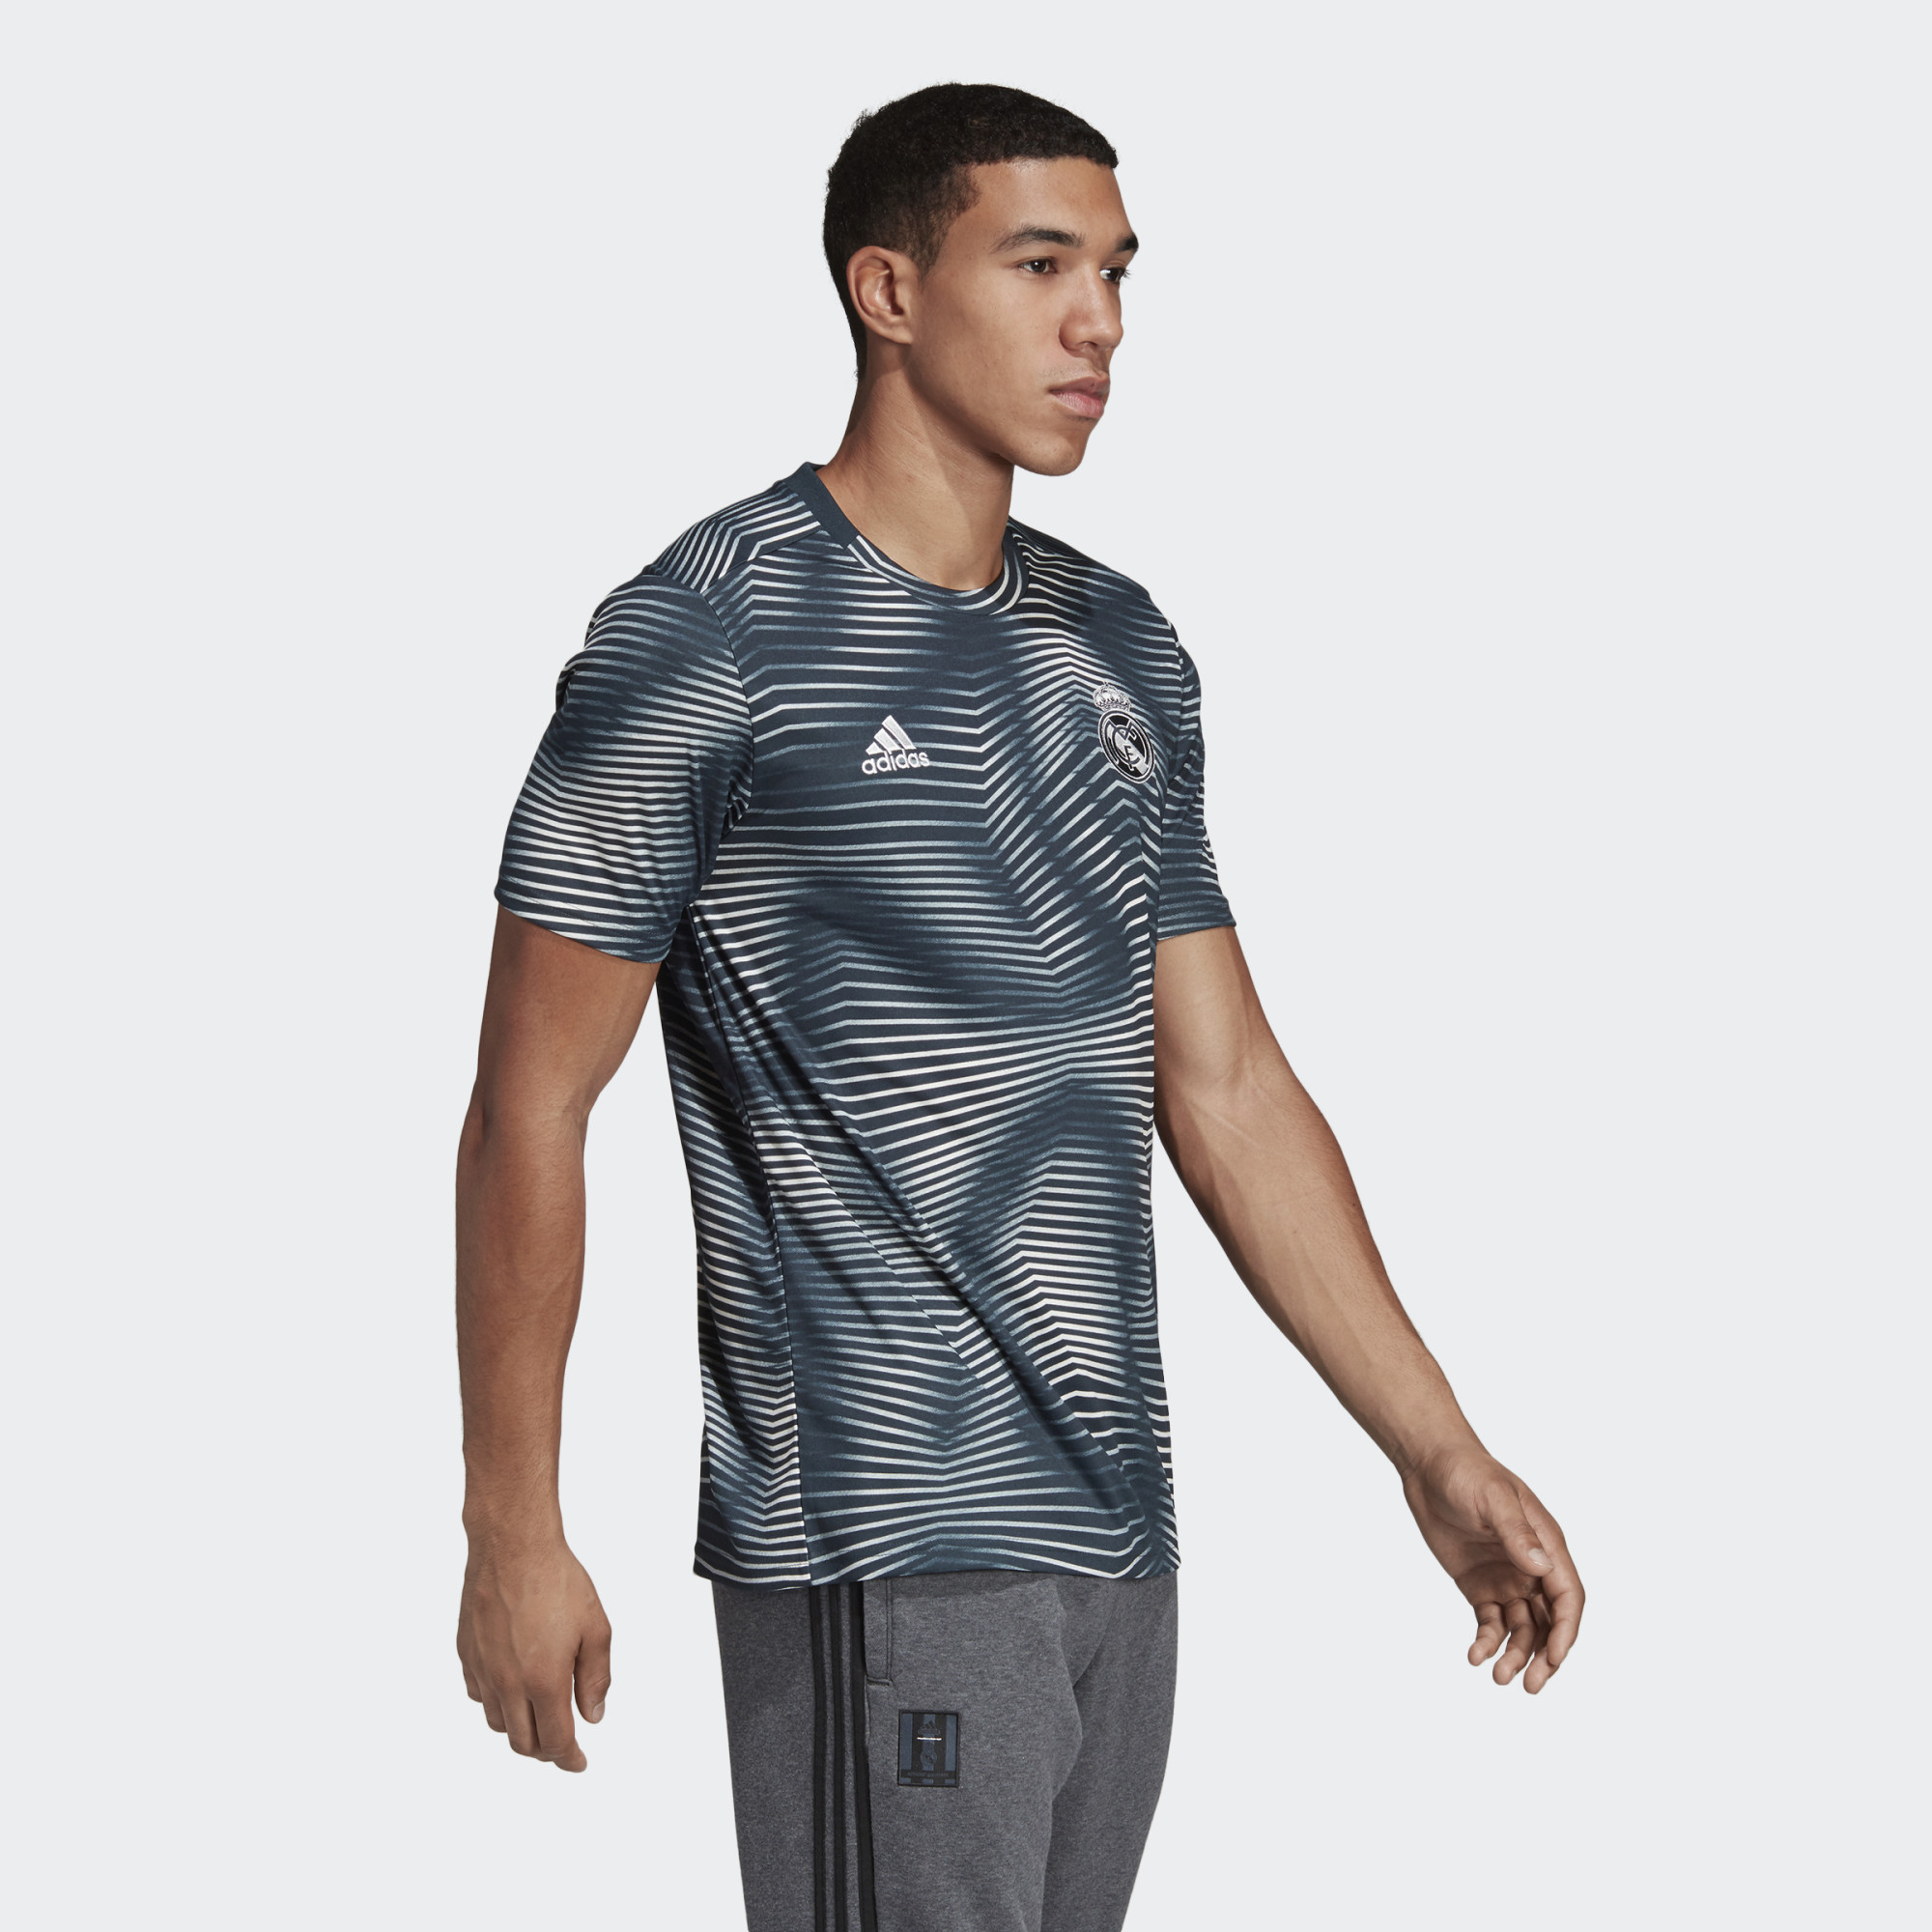 cba3f6285 ... Click to enlarge image  Real Madrid Pre-Match Jersey Grey DP2920 25 model.jpg ...